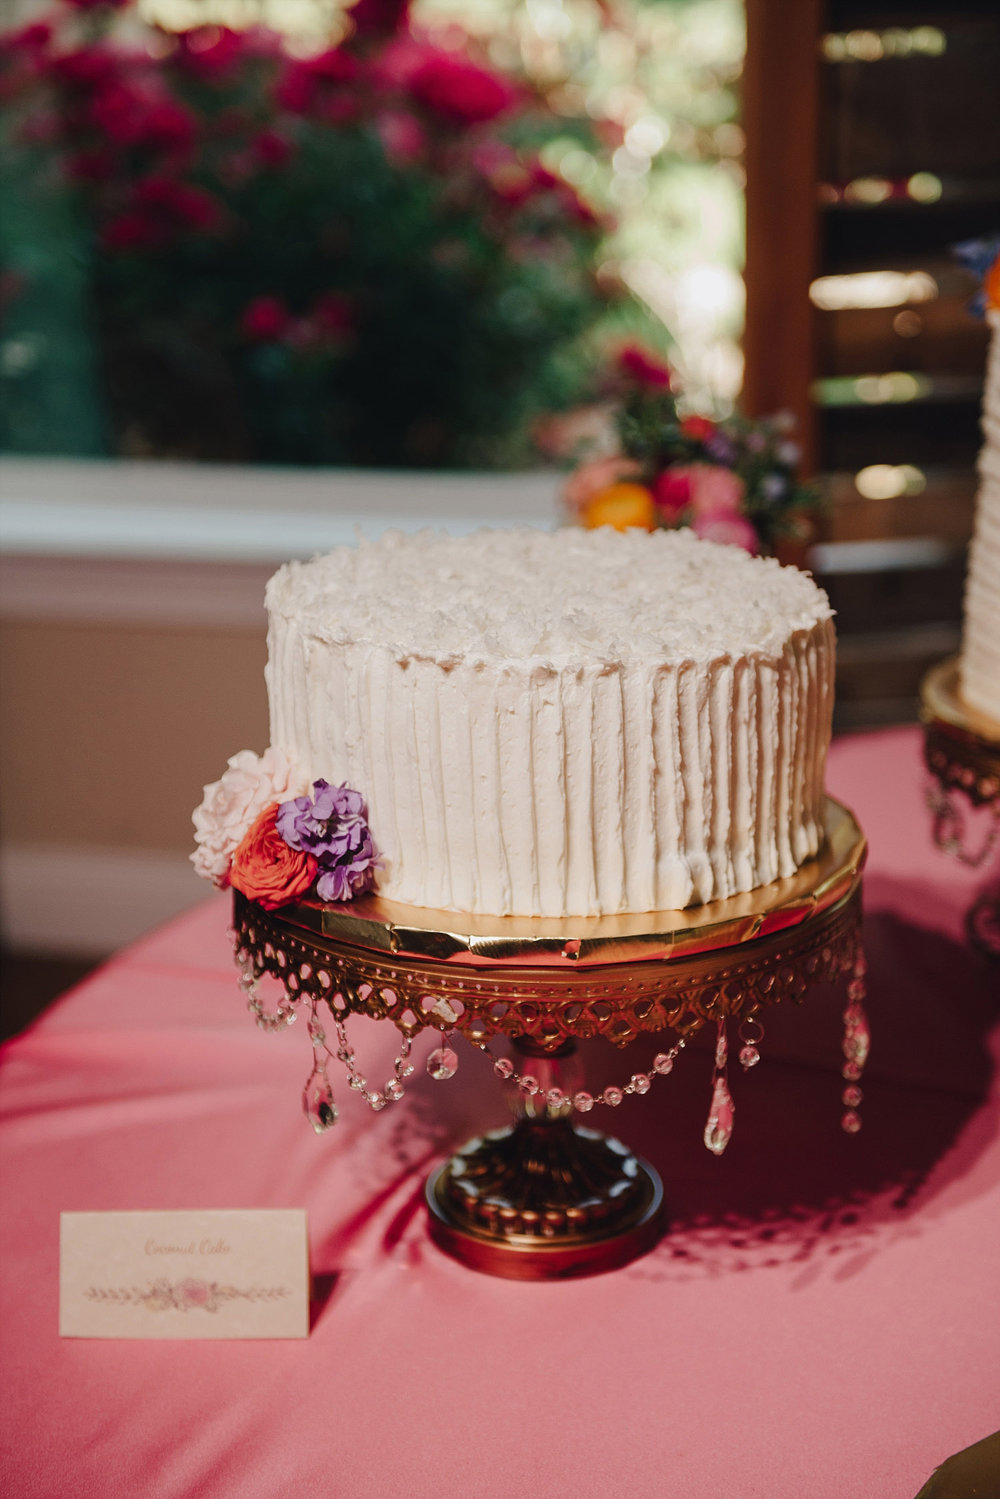 The Orchard Azle wedding cake